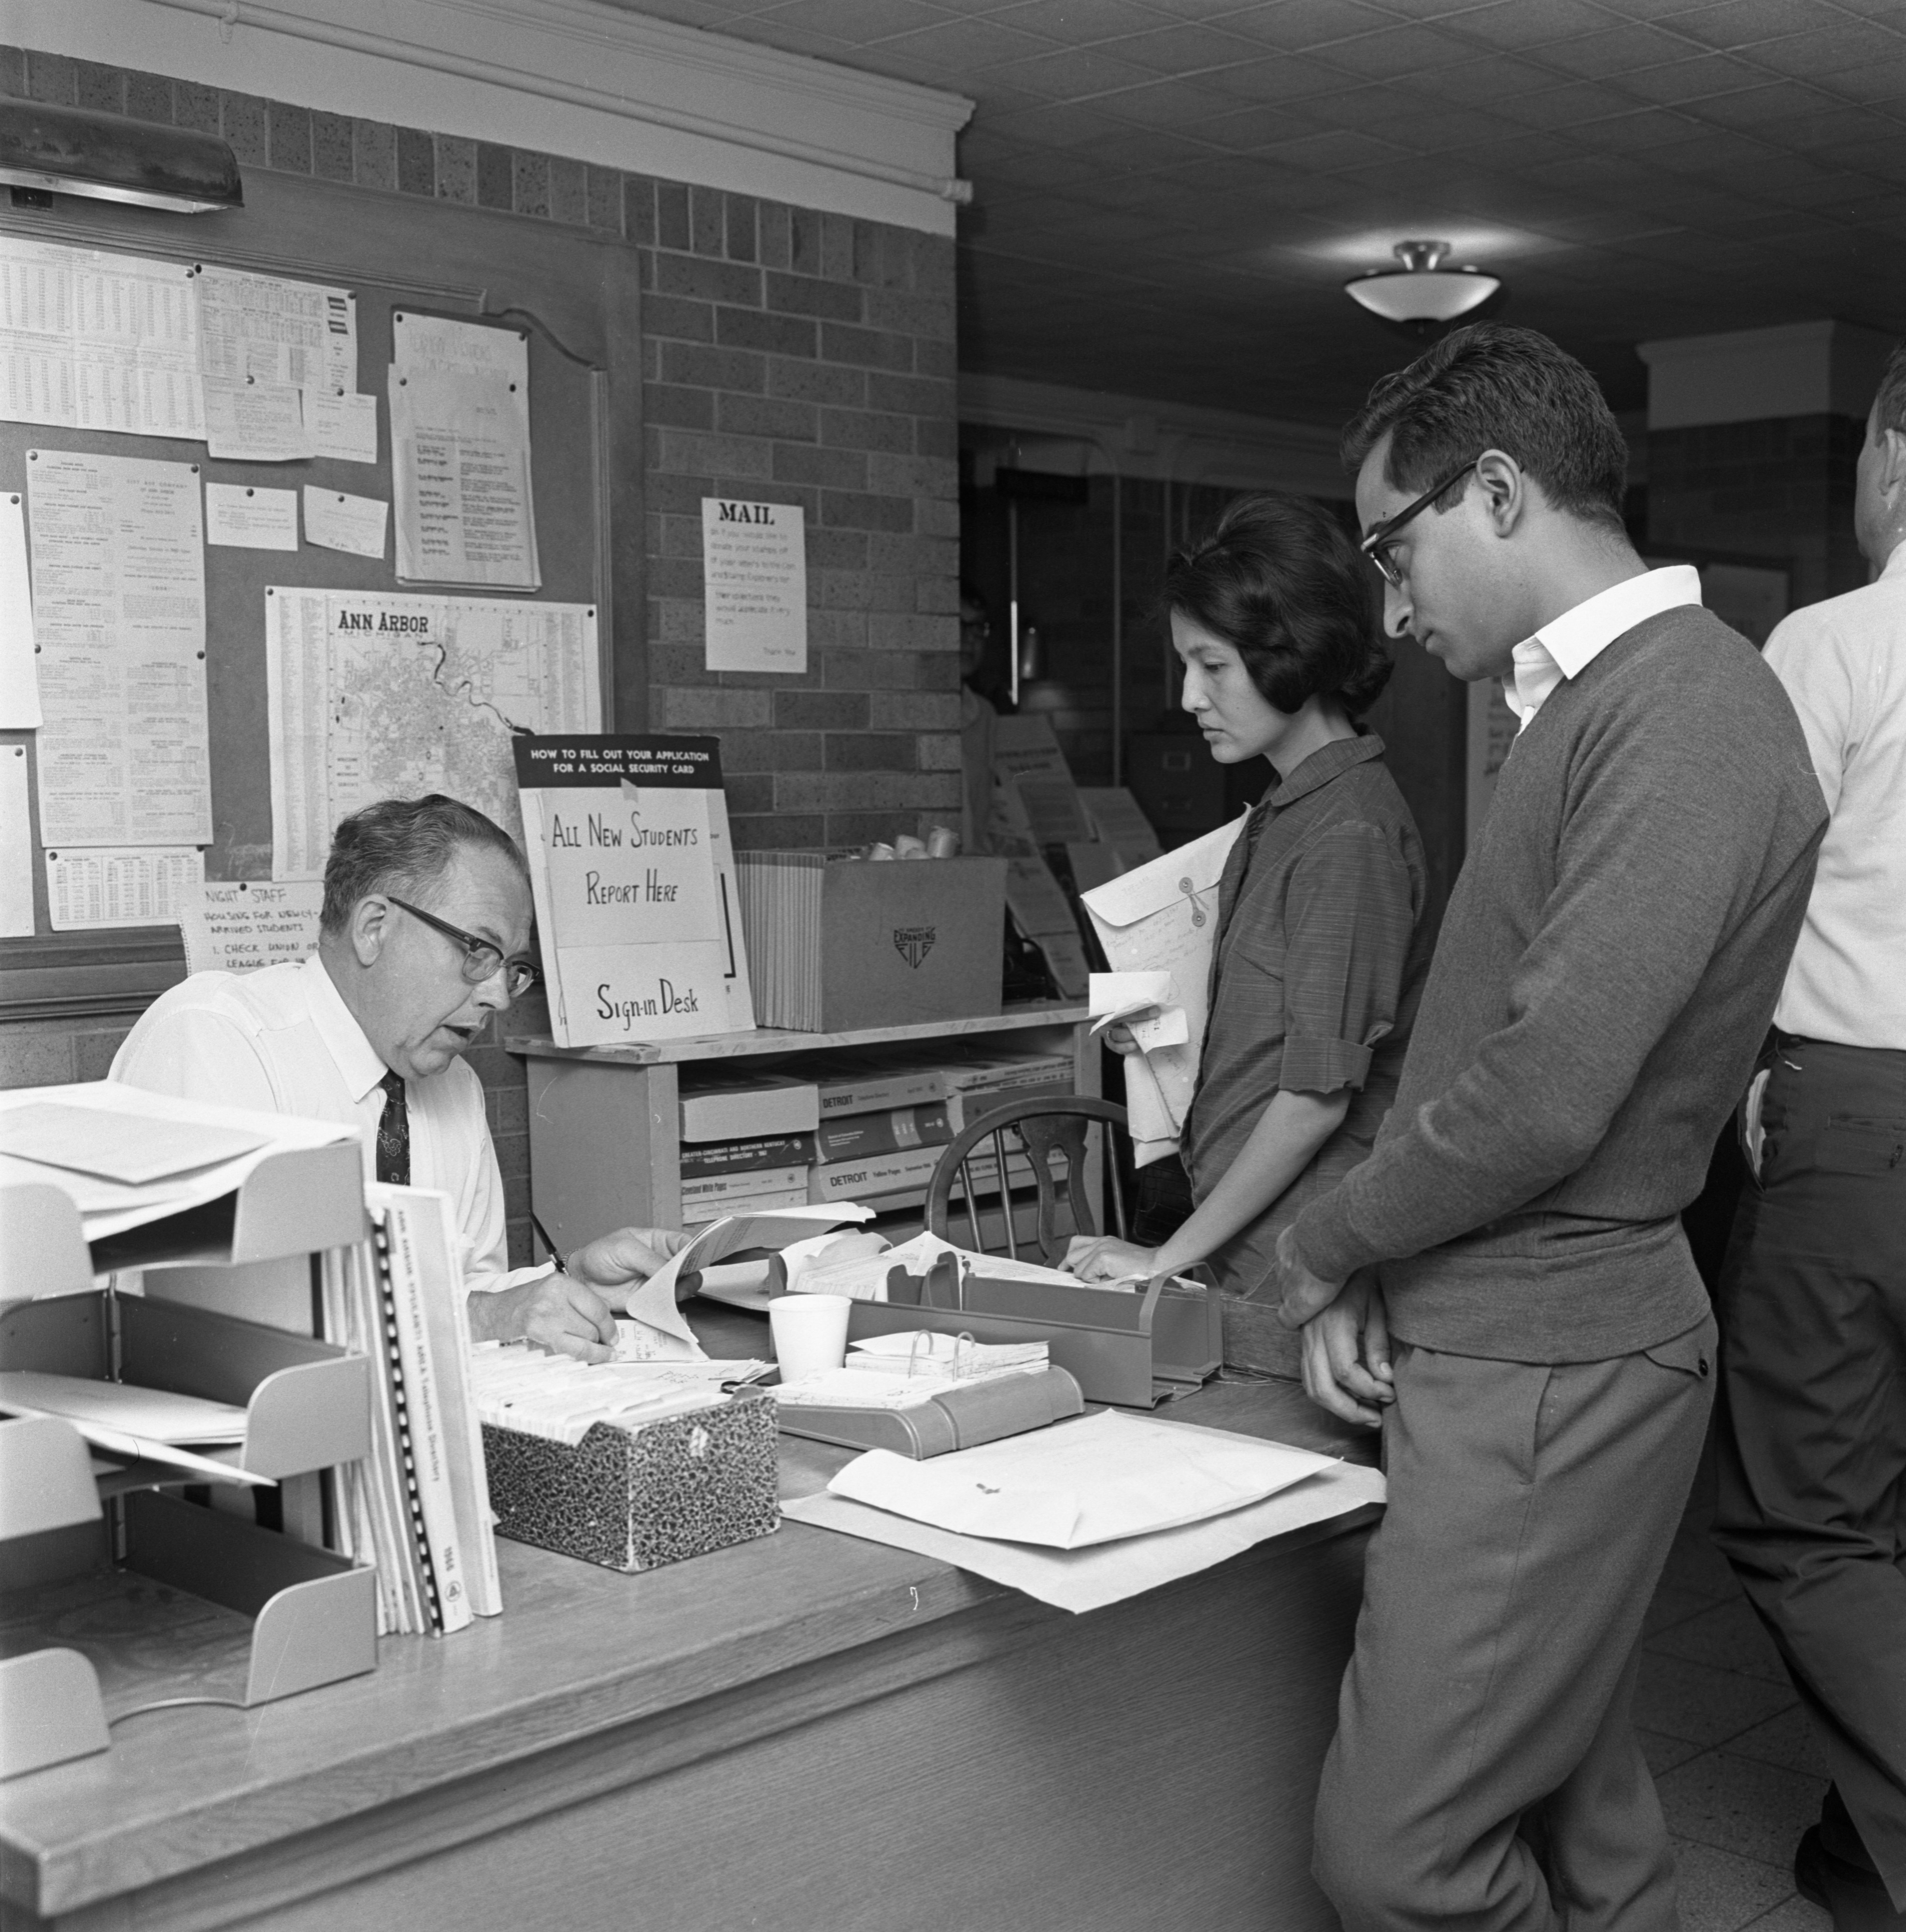 UM Students Register For Activities At The International Center, September 1967 image